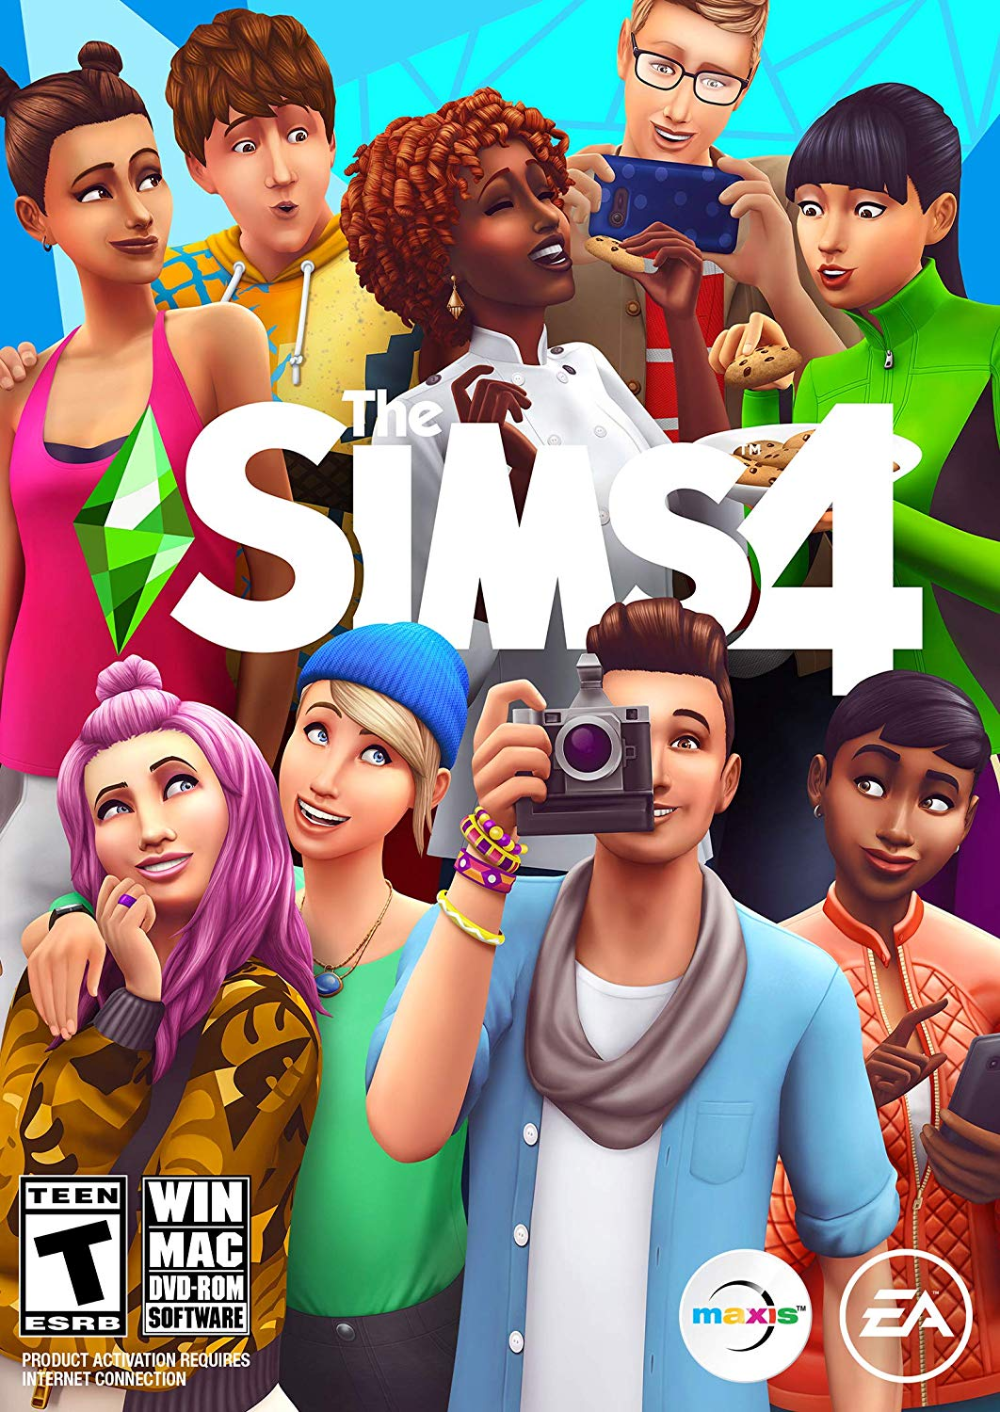 Sims 4 Pc Digital Download Walmart Com In 2020 The Sims 4 Pc Sims 4 Sims